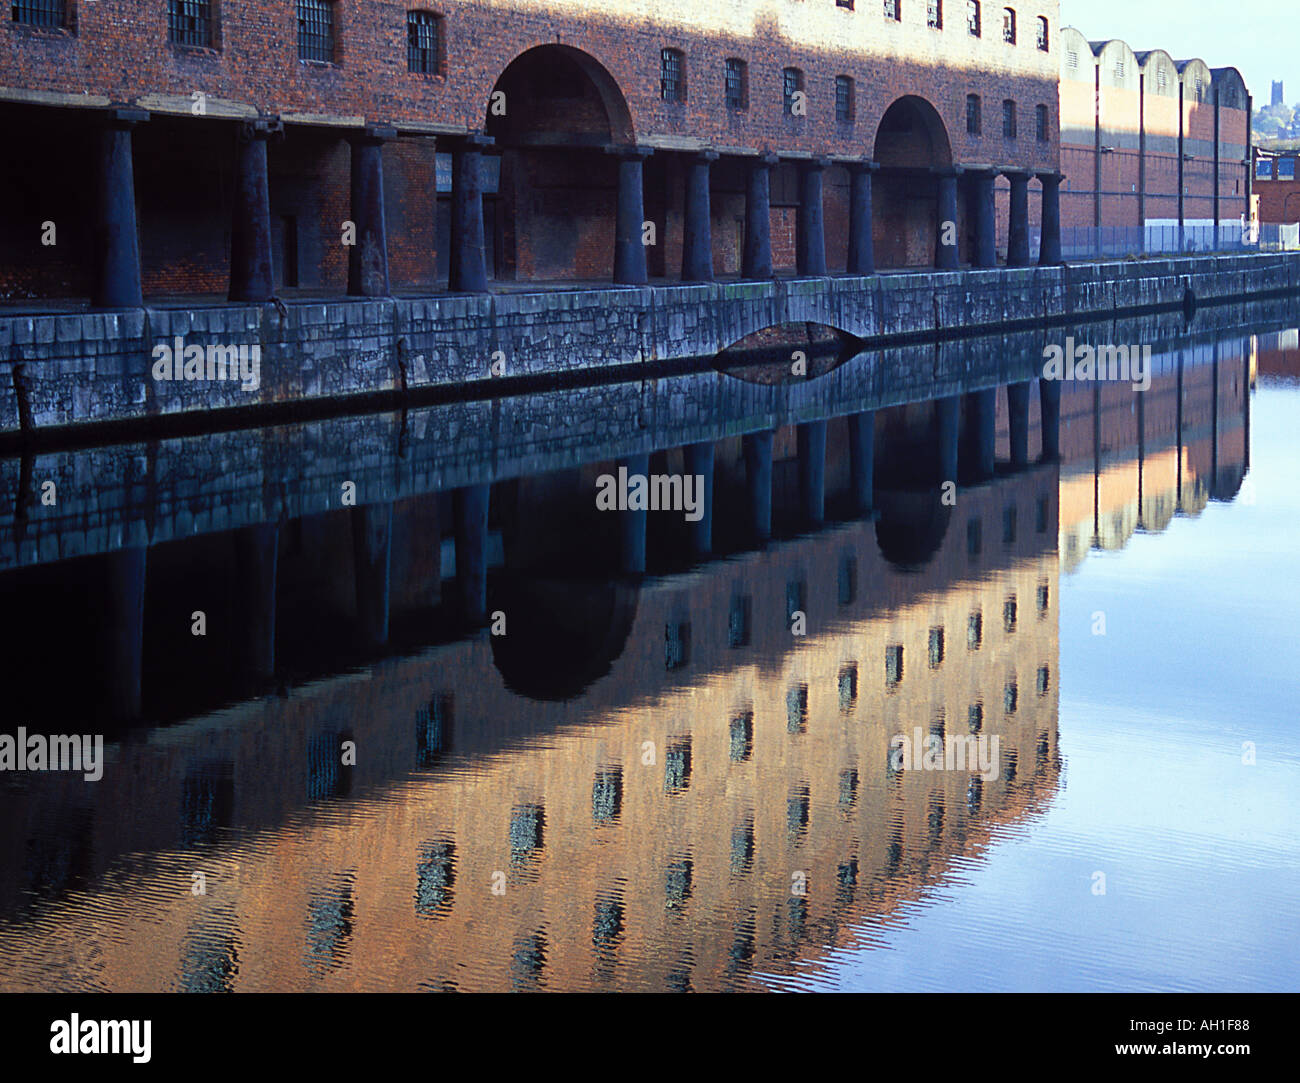 Stanley Dock Warehouse Liverpool 1848 by Jesse Hartley Stock Photo